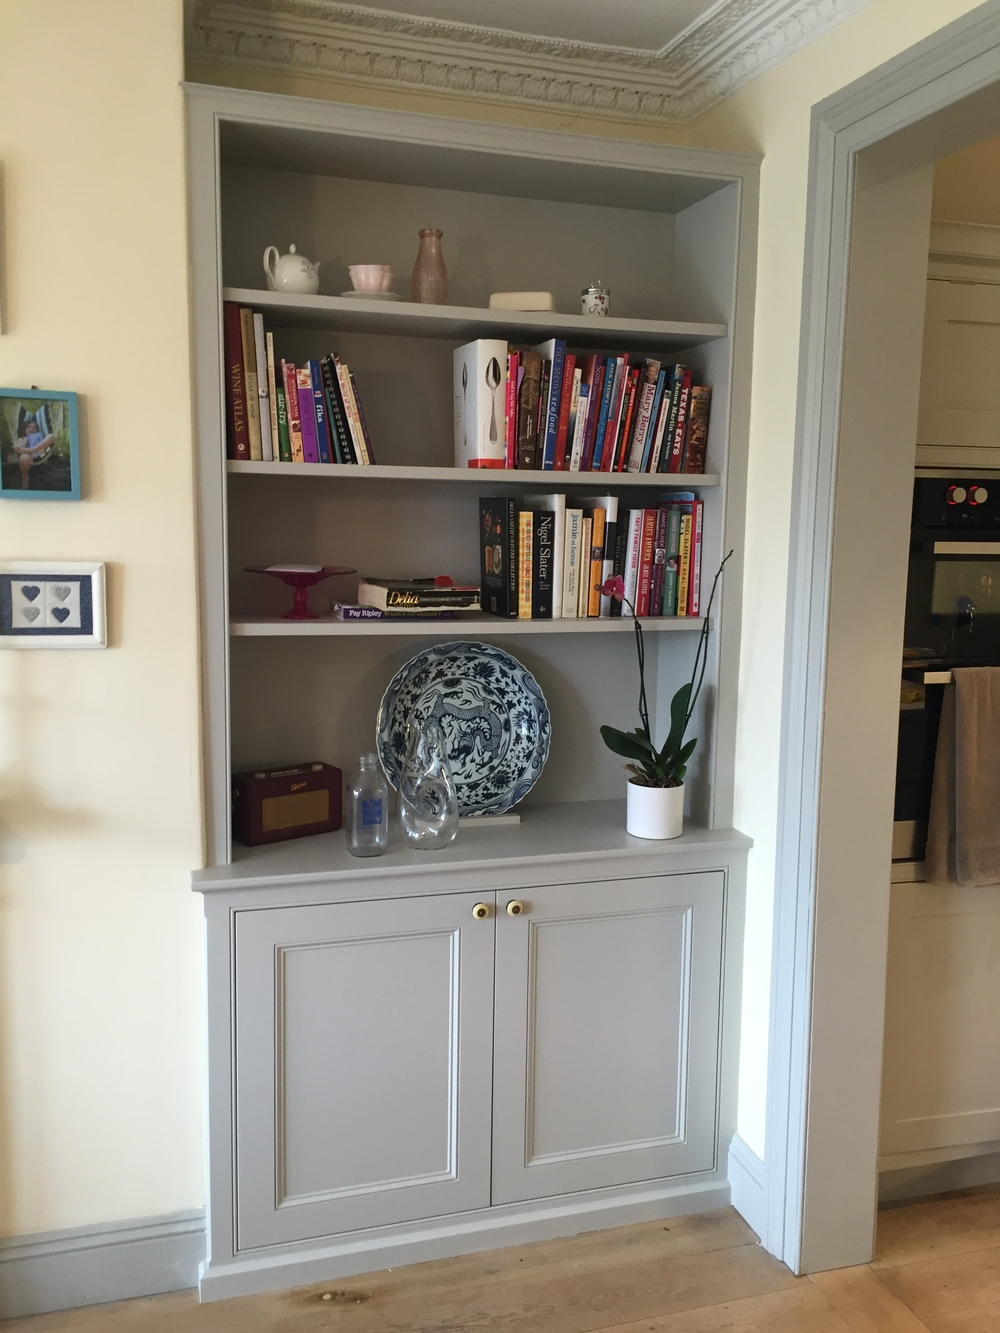 Alcove Units Oliver Hazael Bespoke Carpentry